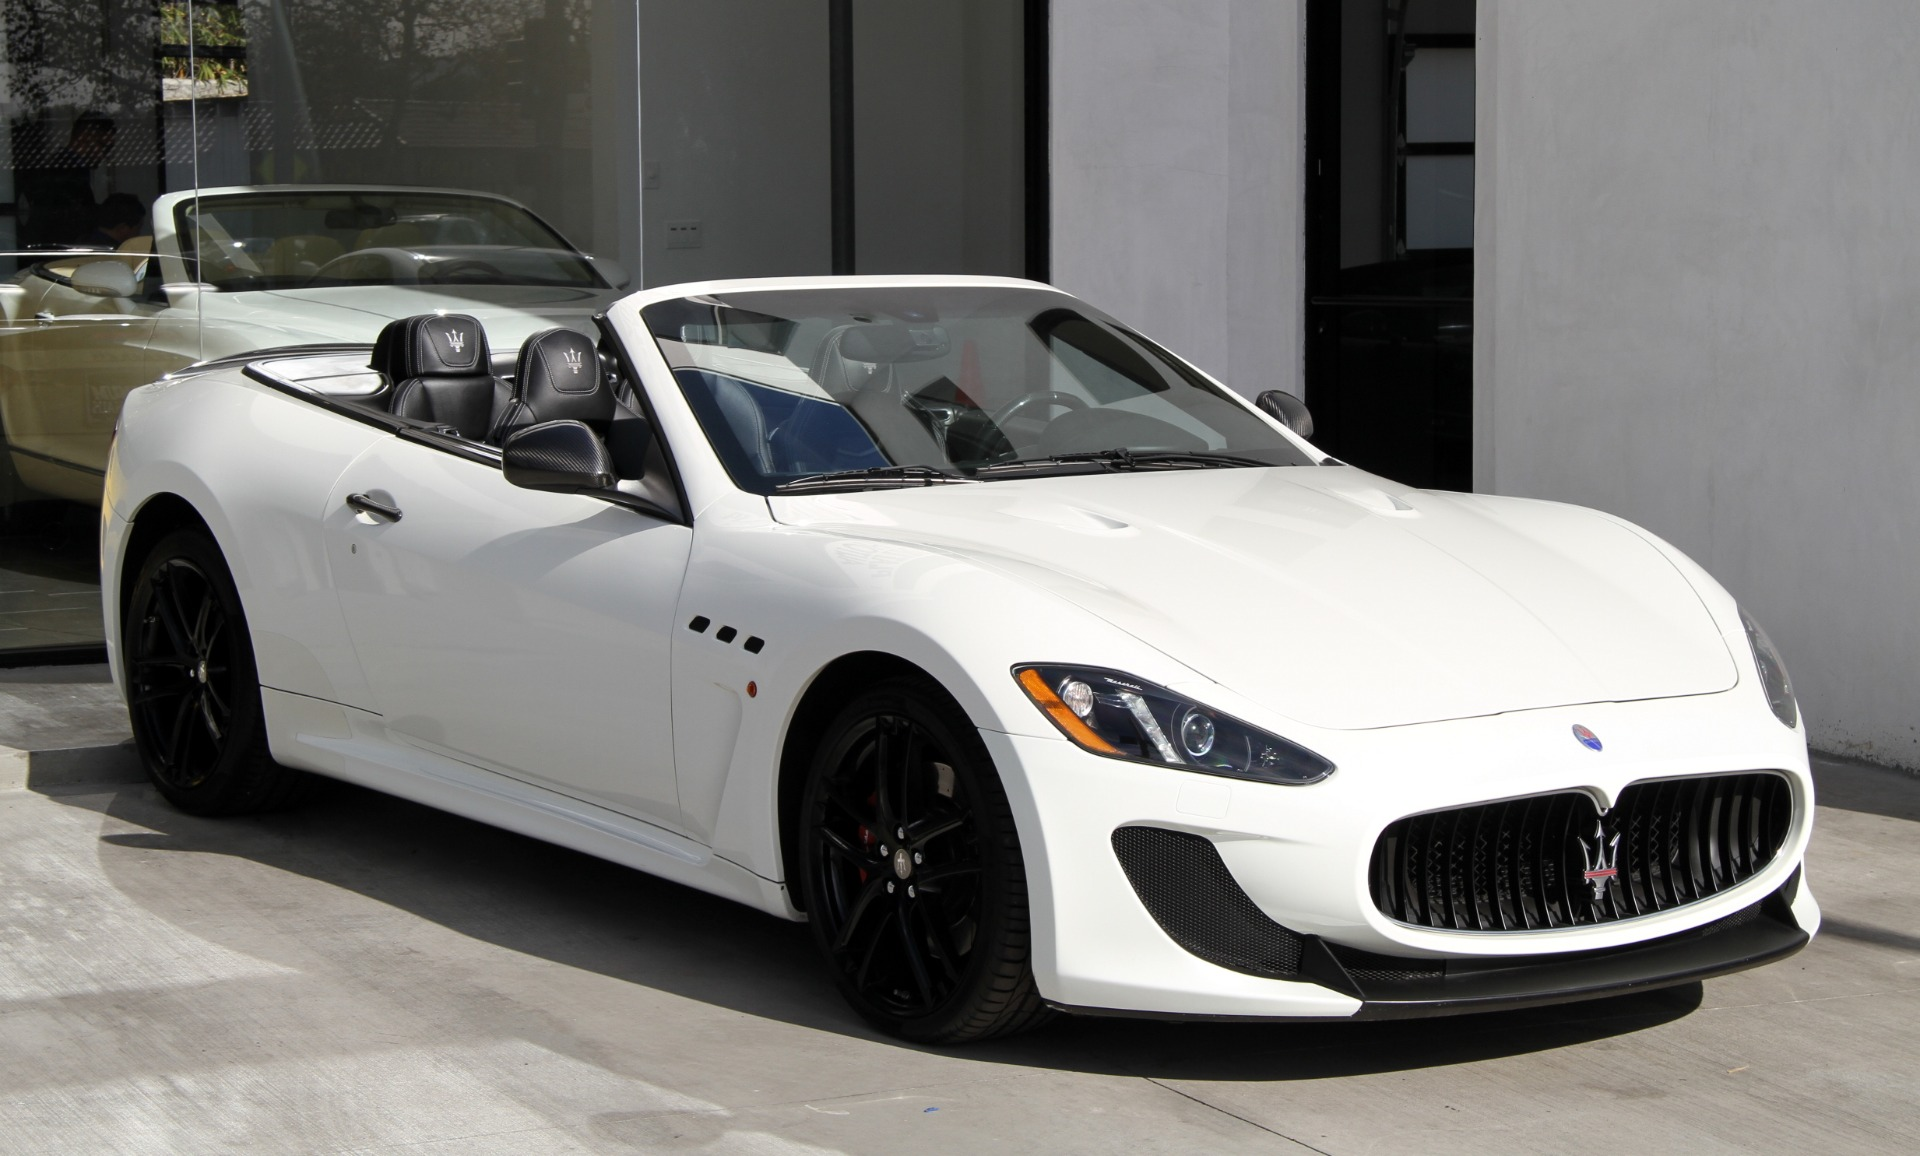 2013 maserati granturismo mc stradale stock 6083 for sale near redondo beach ca ca maserati. Black Bedroom Furniture Sets. Home Design Ideas